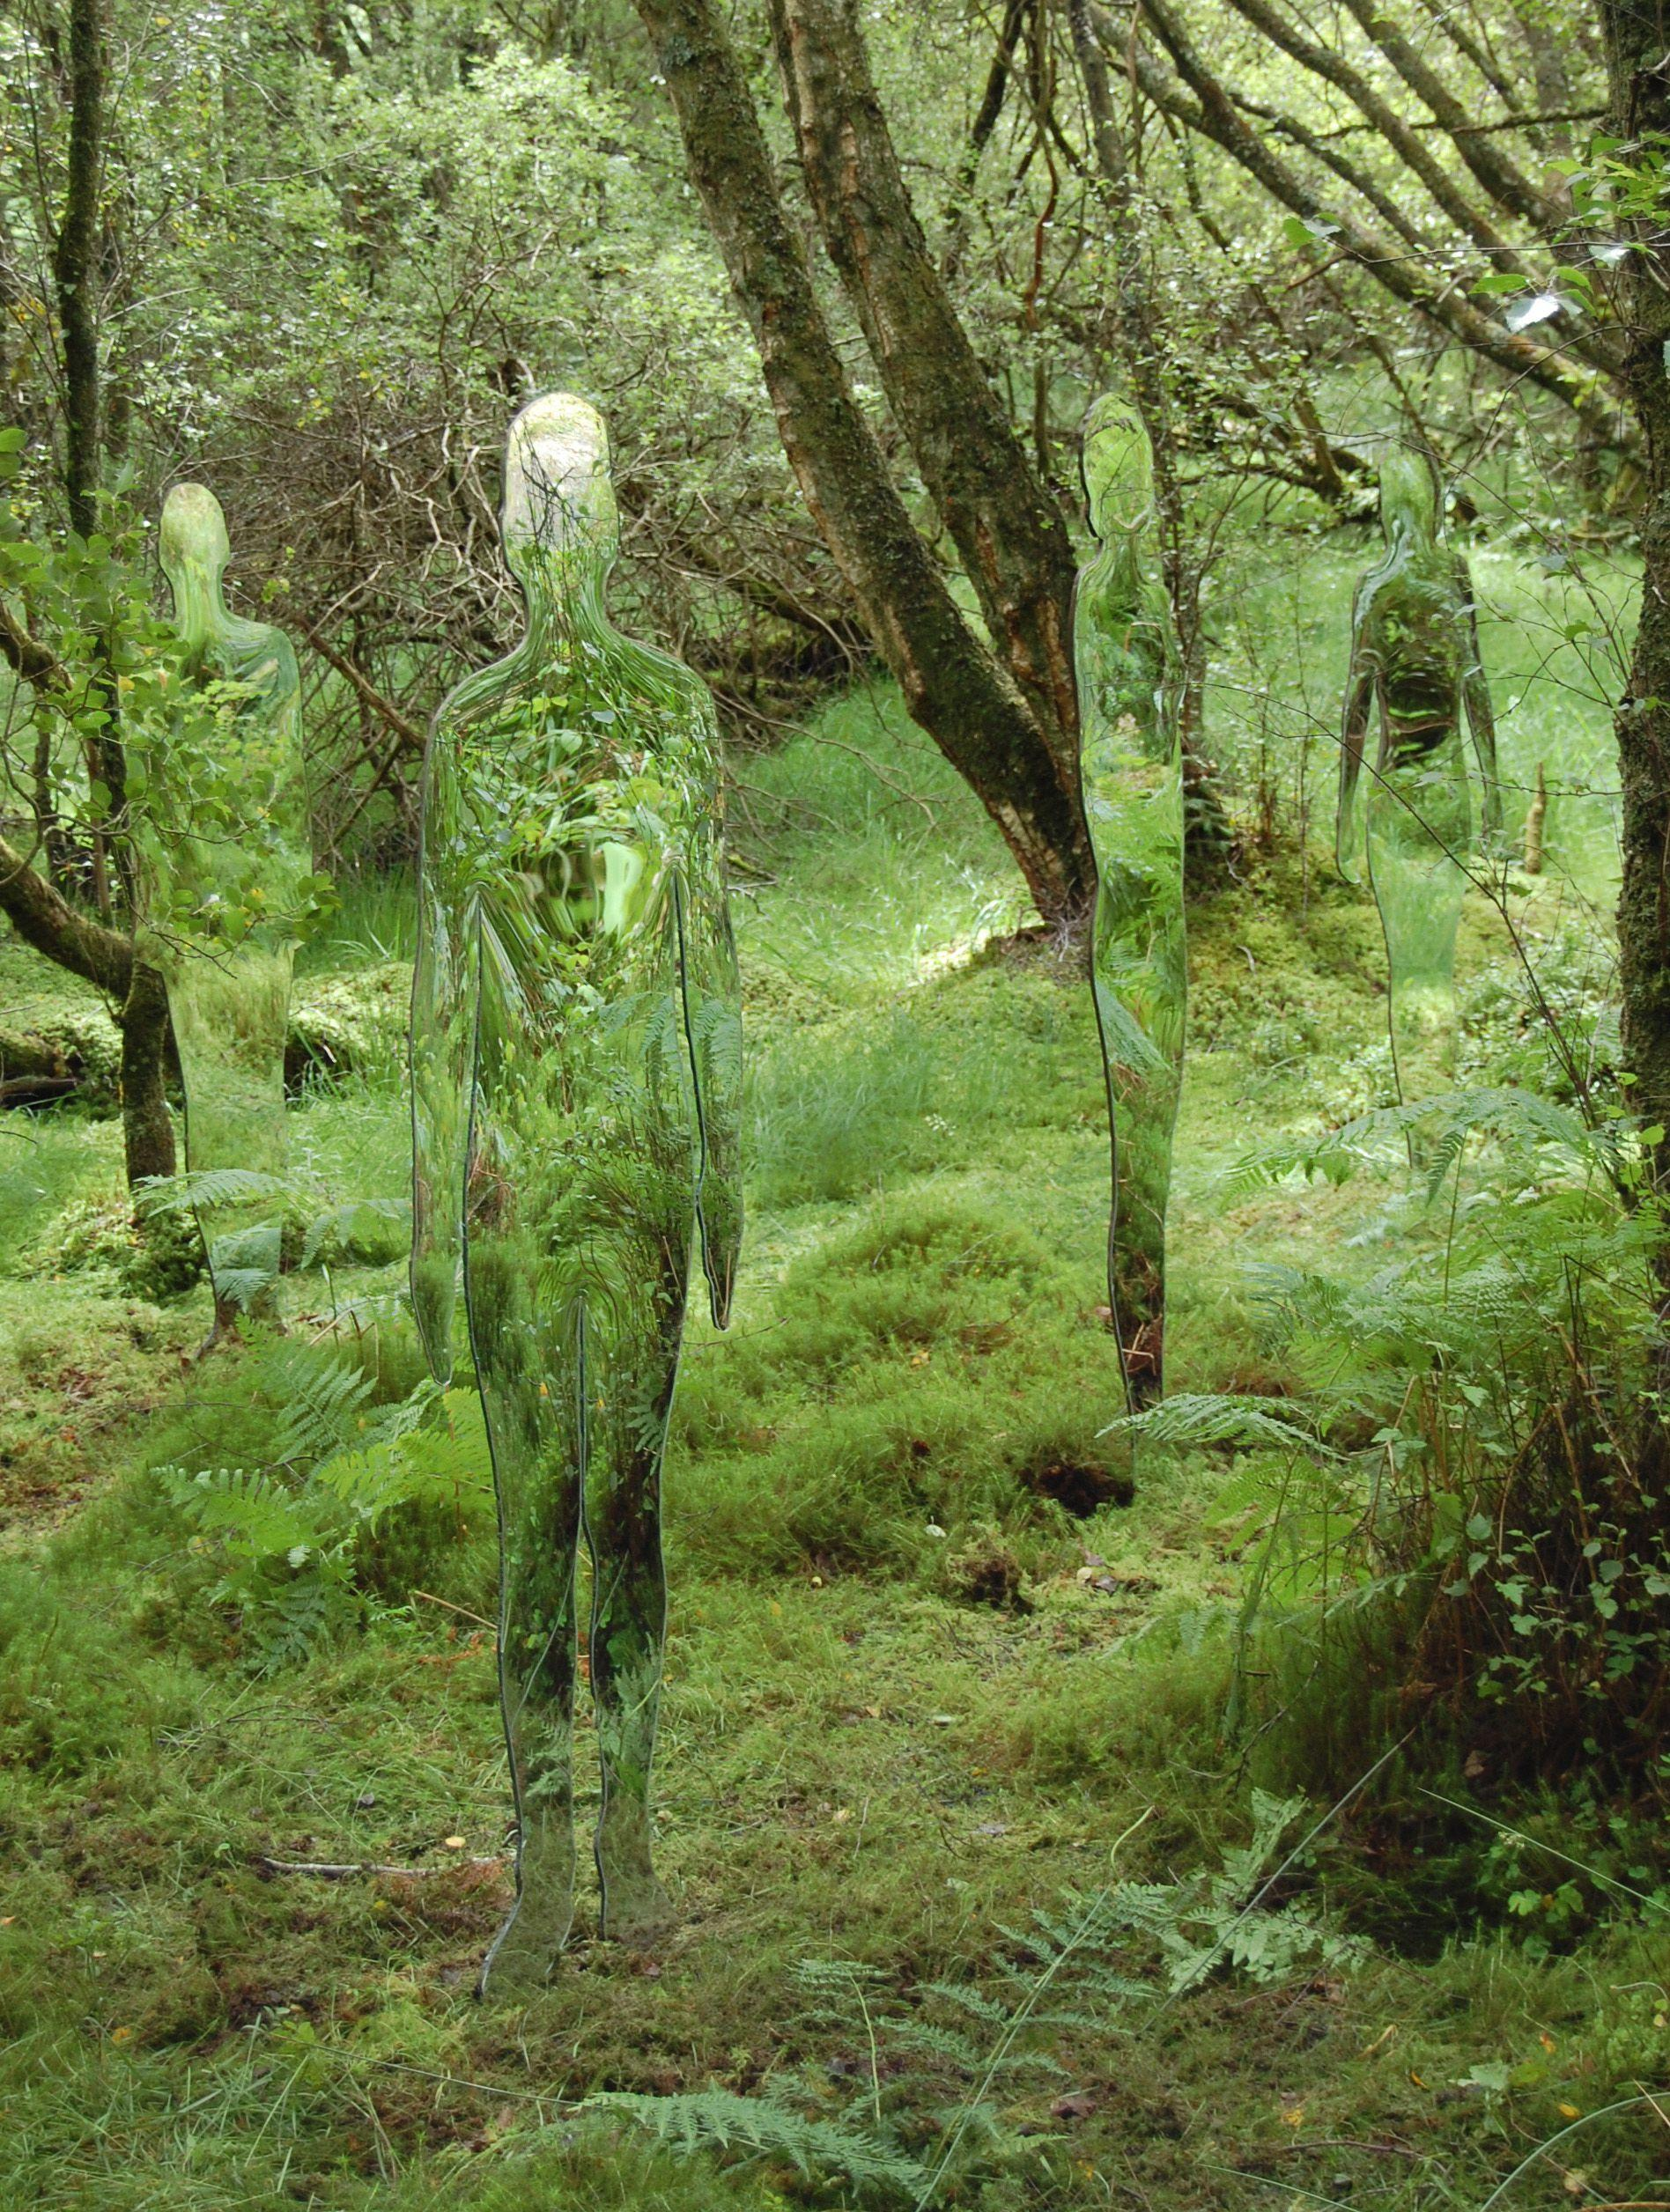 """Mirrored sculptures are displayed at the David Marshall Lodge near Aberfoyle in the Trossachs near Loch Lomond, Scotland. The installation is part of the town's regeneration and conveys the changes that have occurred in the landscape over the last few hundred years. The """"invisible"""" figures appear to blend into the wooded background. (Photo by Rob Mulholland / Rex Features)"""